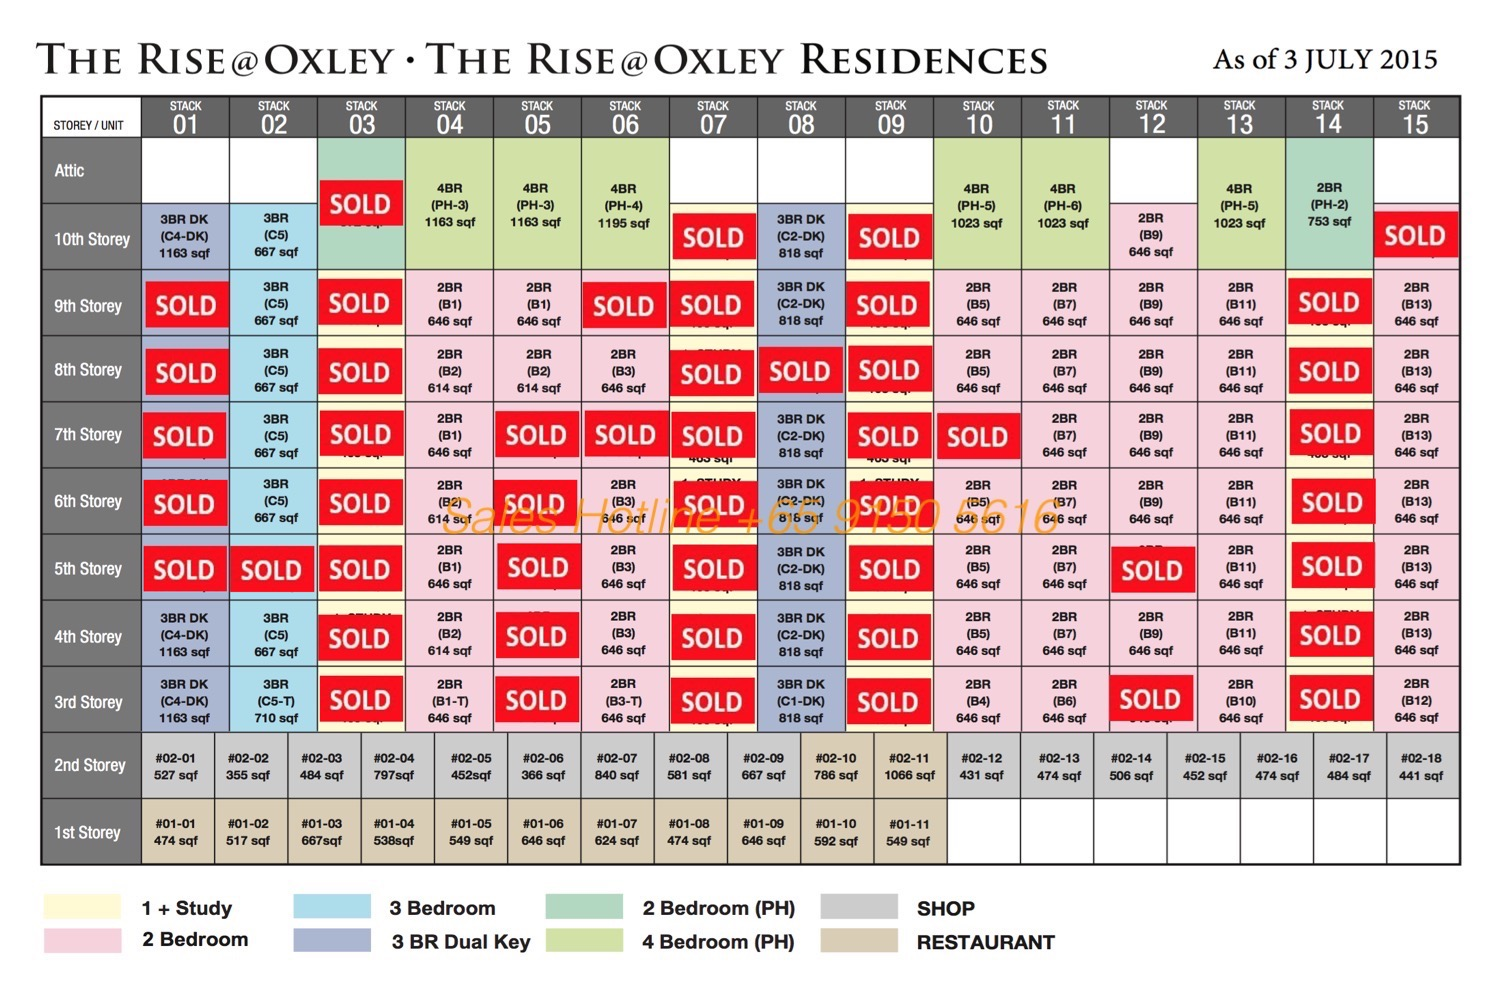 The Rise at Oxley Sales Chart July